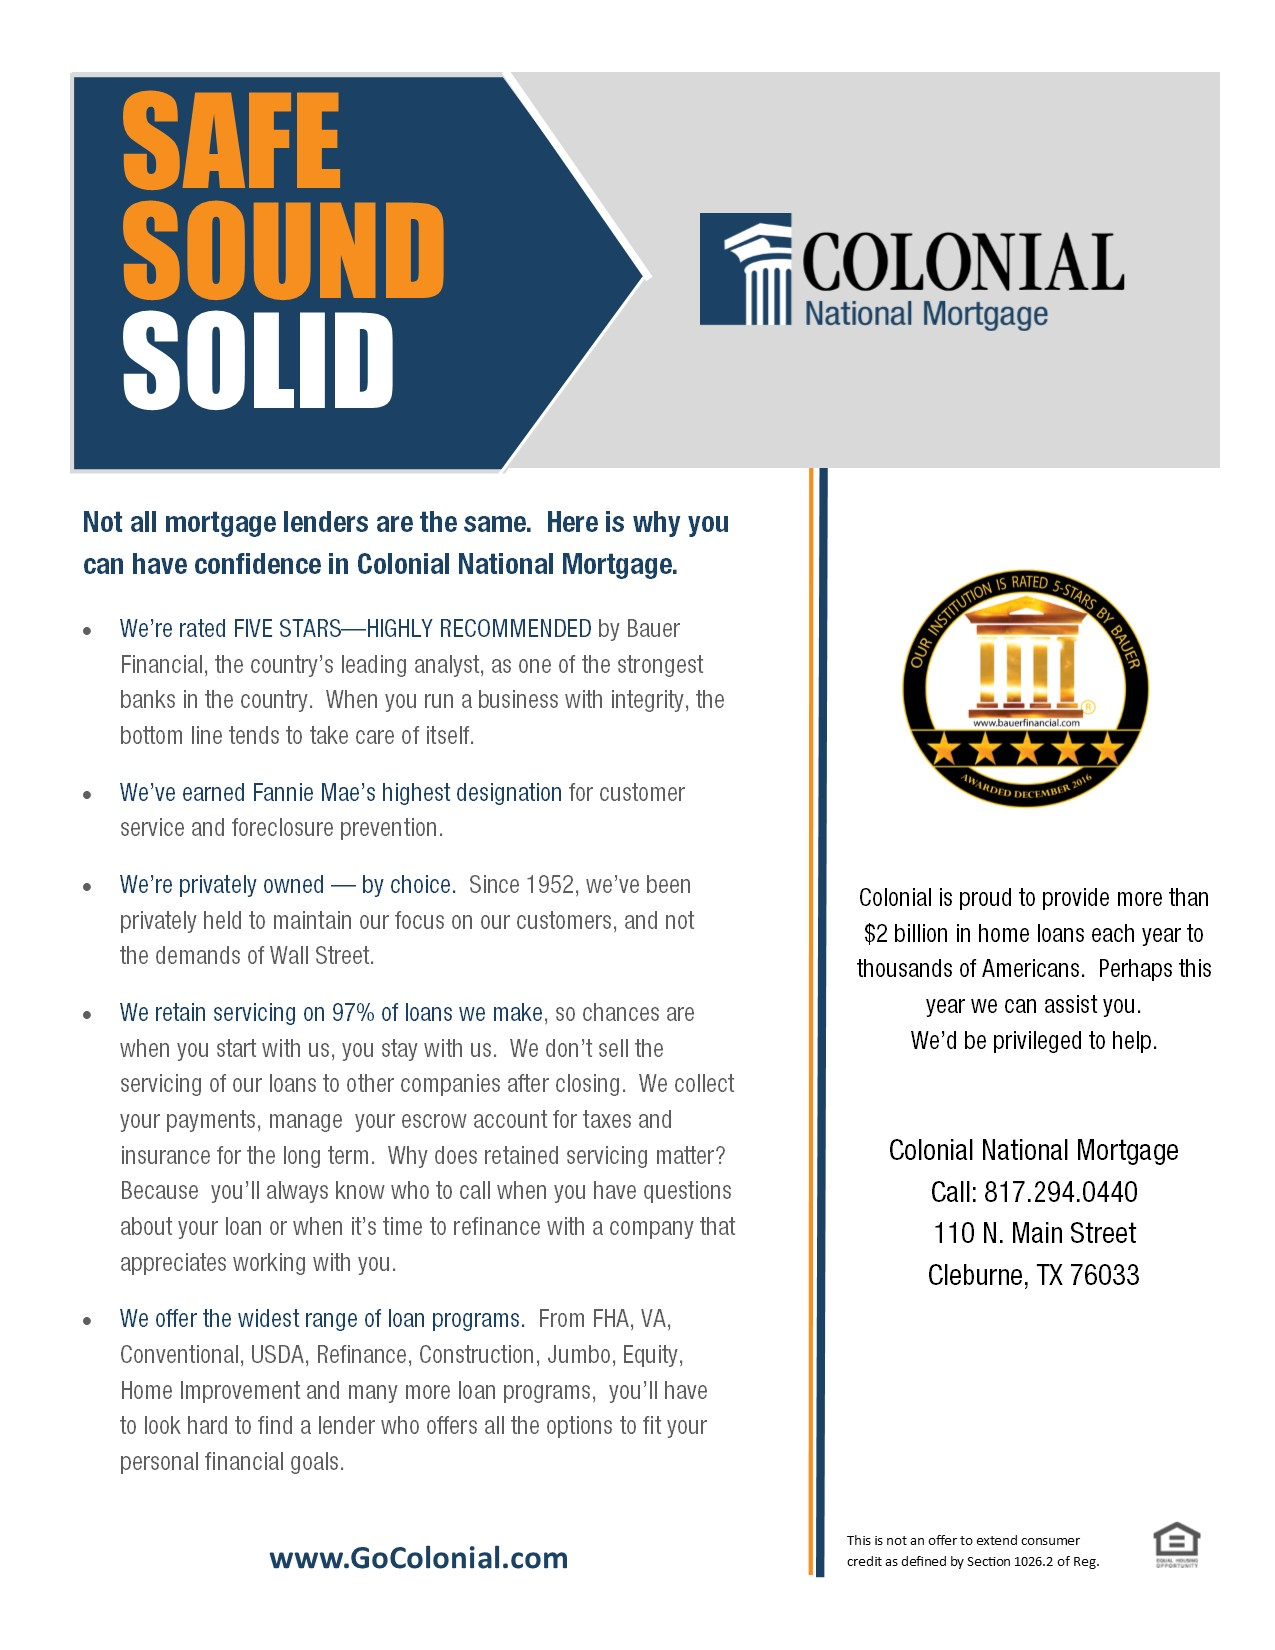 Colonial - Banking, Home Loans & Insurance image 2